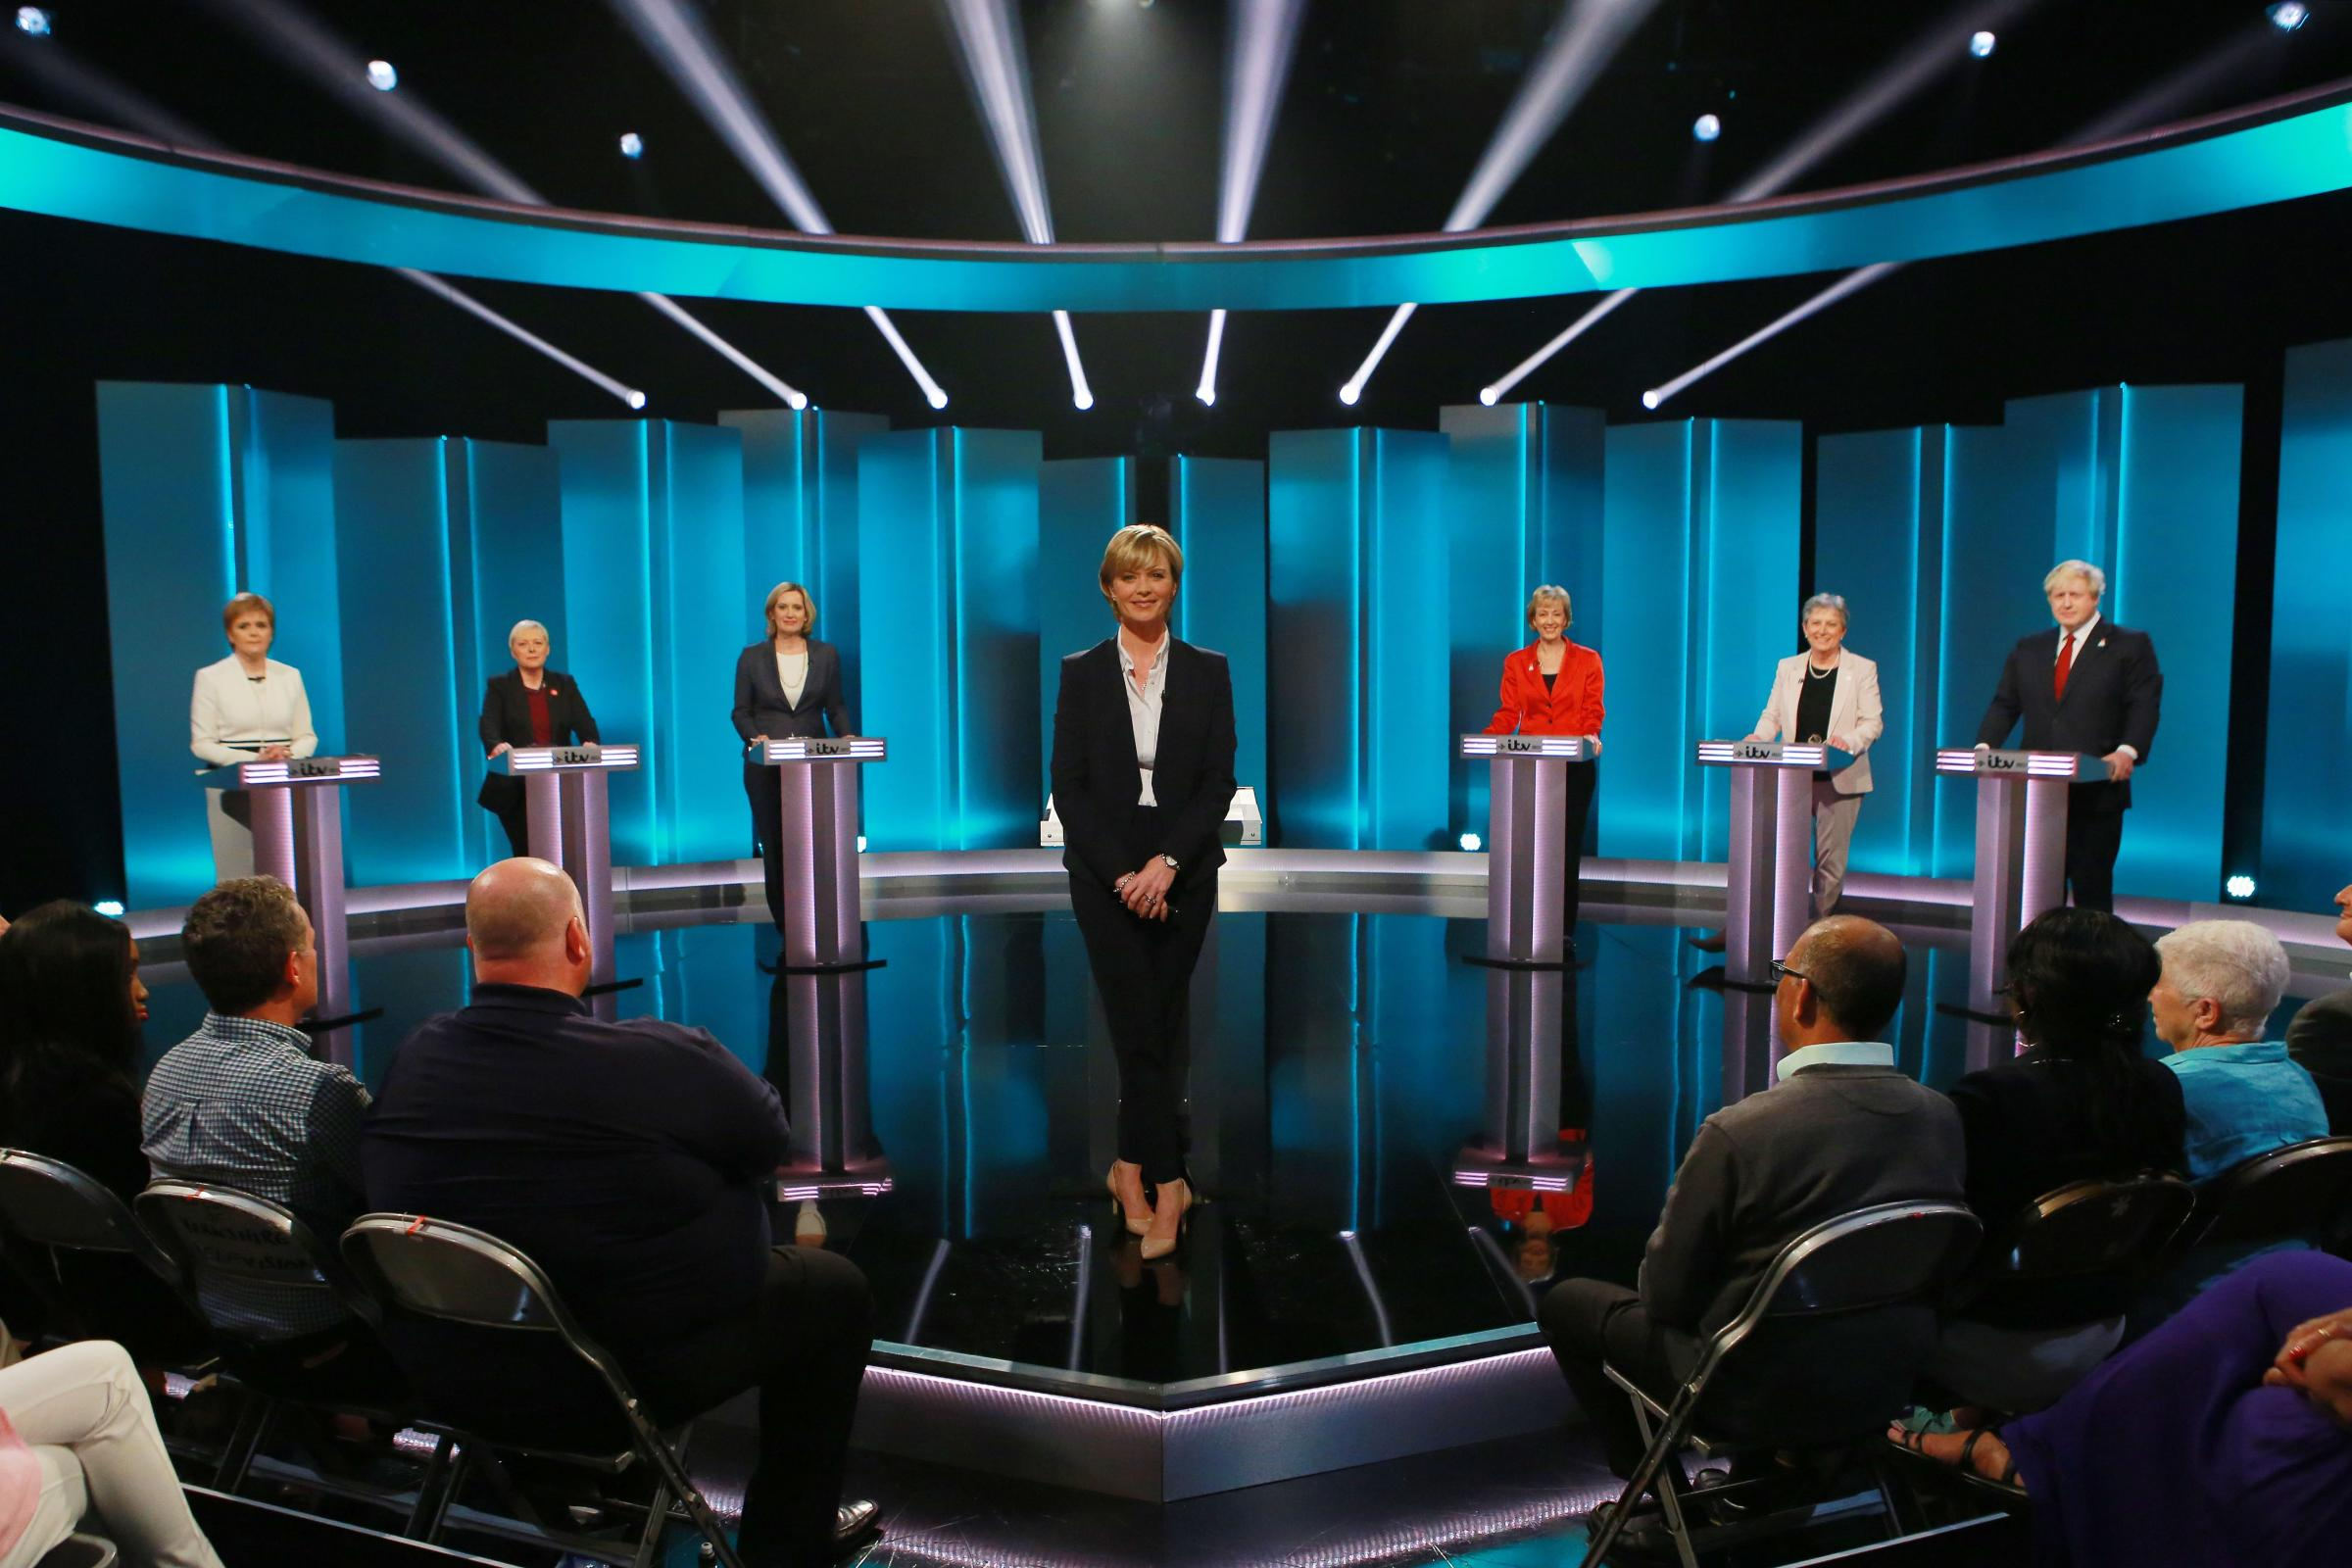 ITV leaders' debate will exclude SNP and LibDems, High Court hears